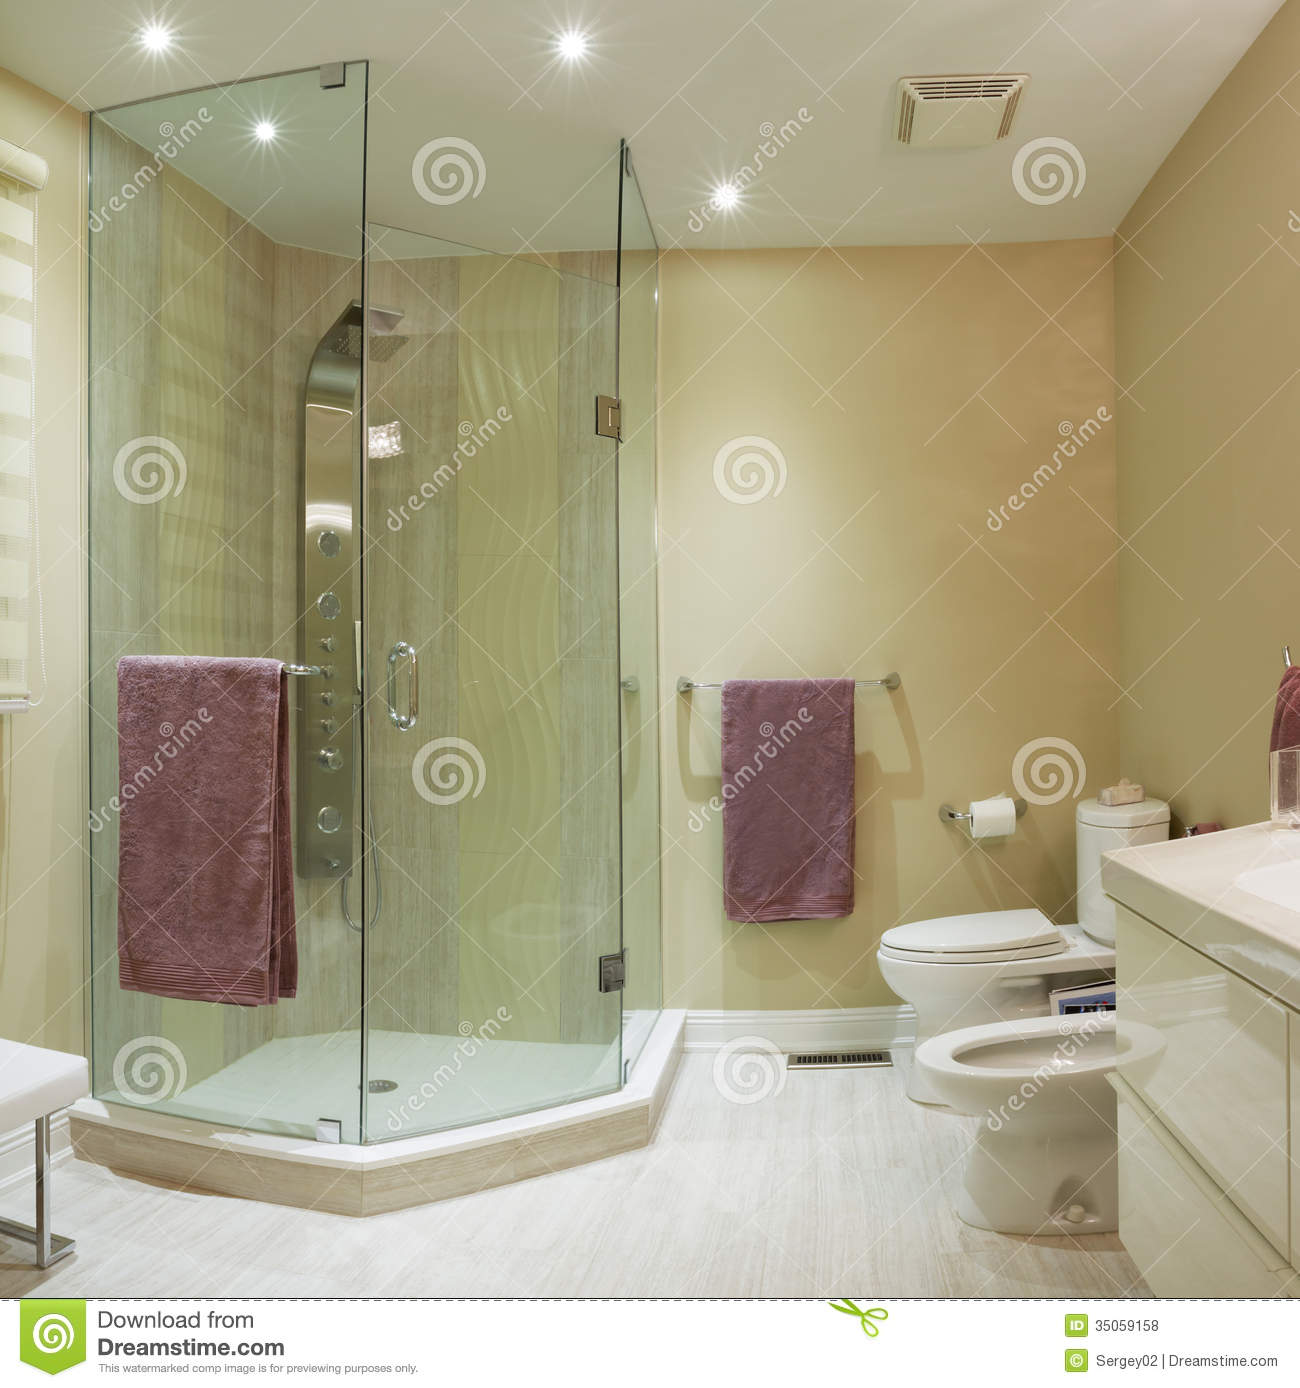 Astounding Interior Design Royalty Free Stock Photos Image 35059158 Largest Home Design Picture Inspirations Pitcheantrous